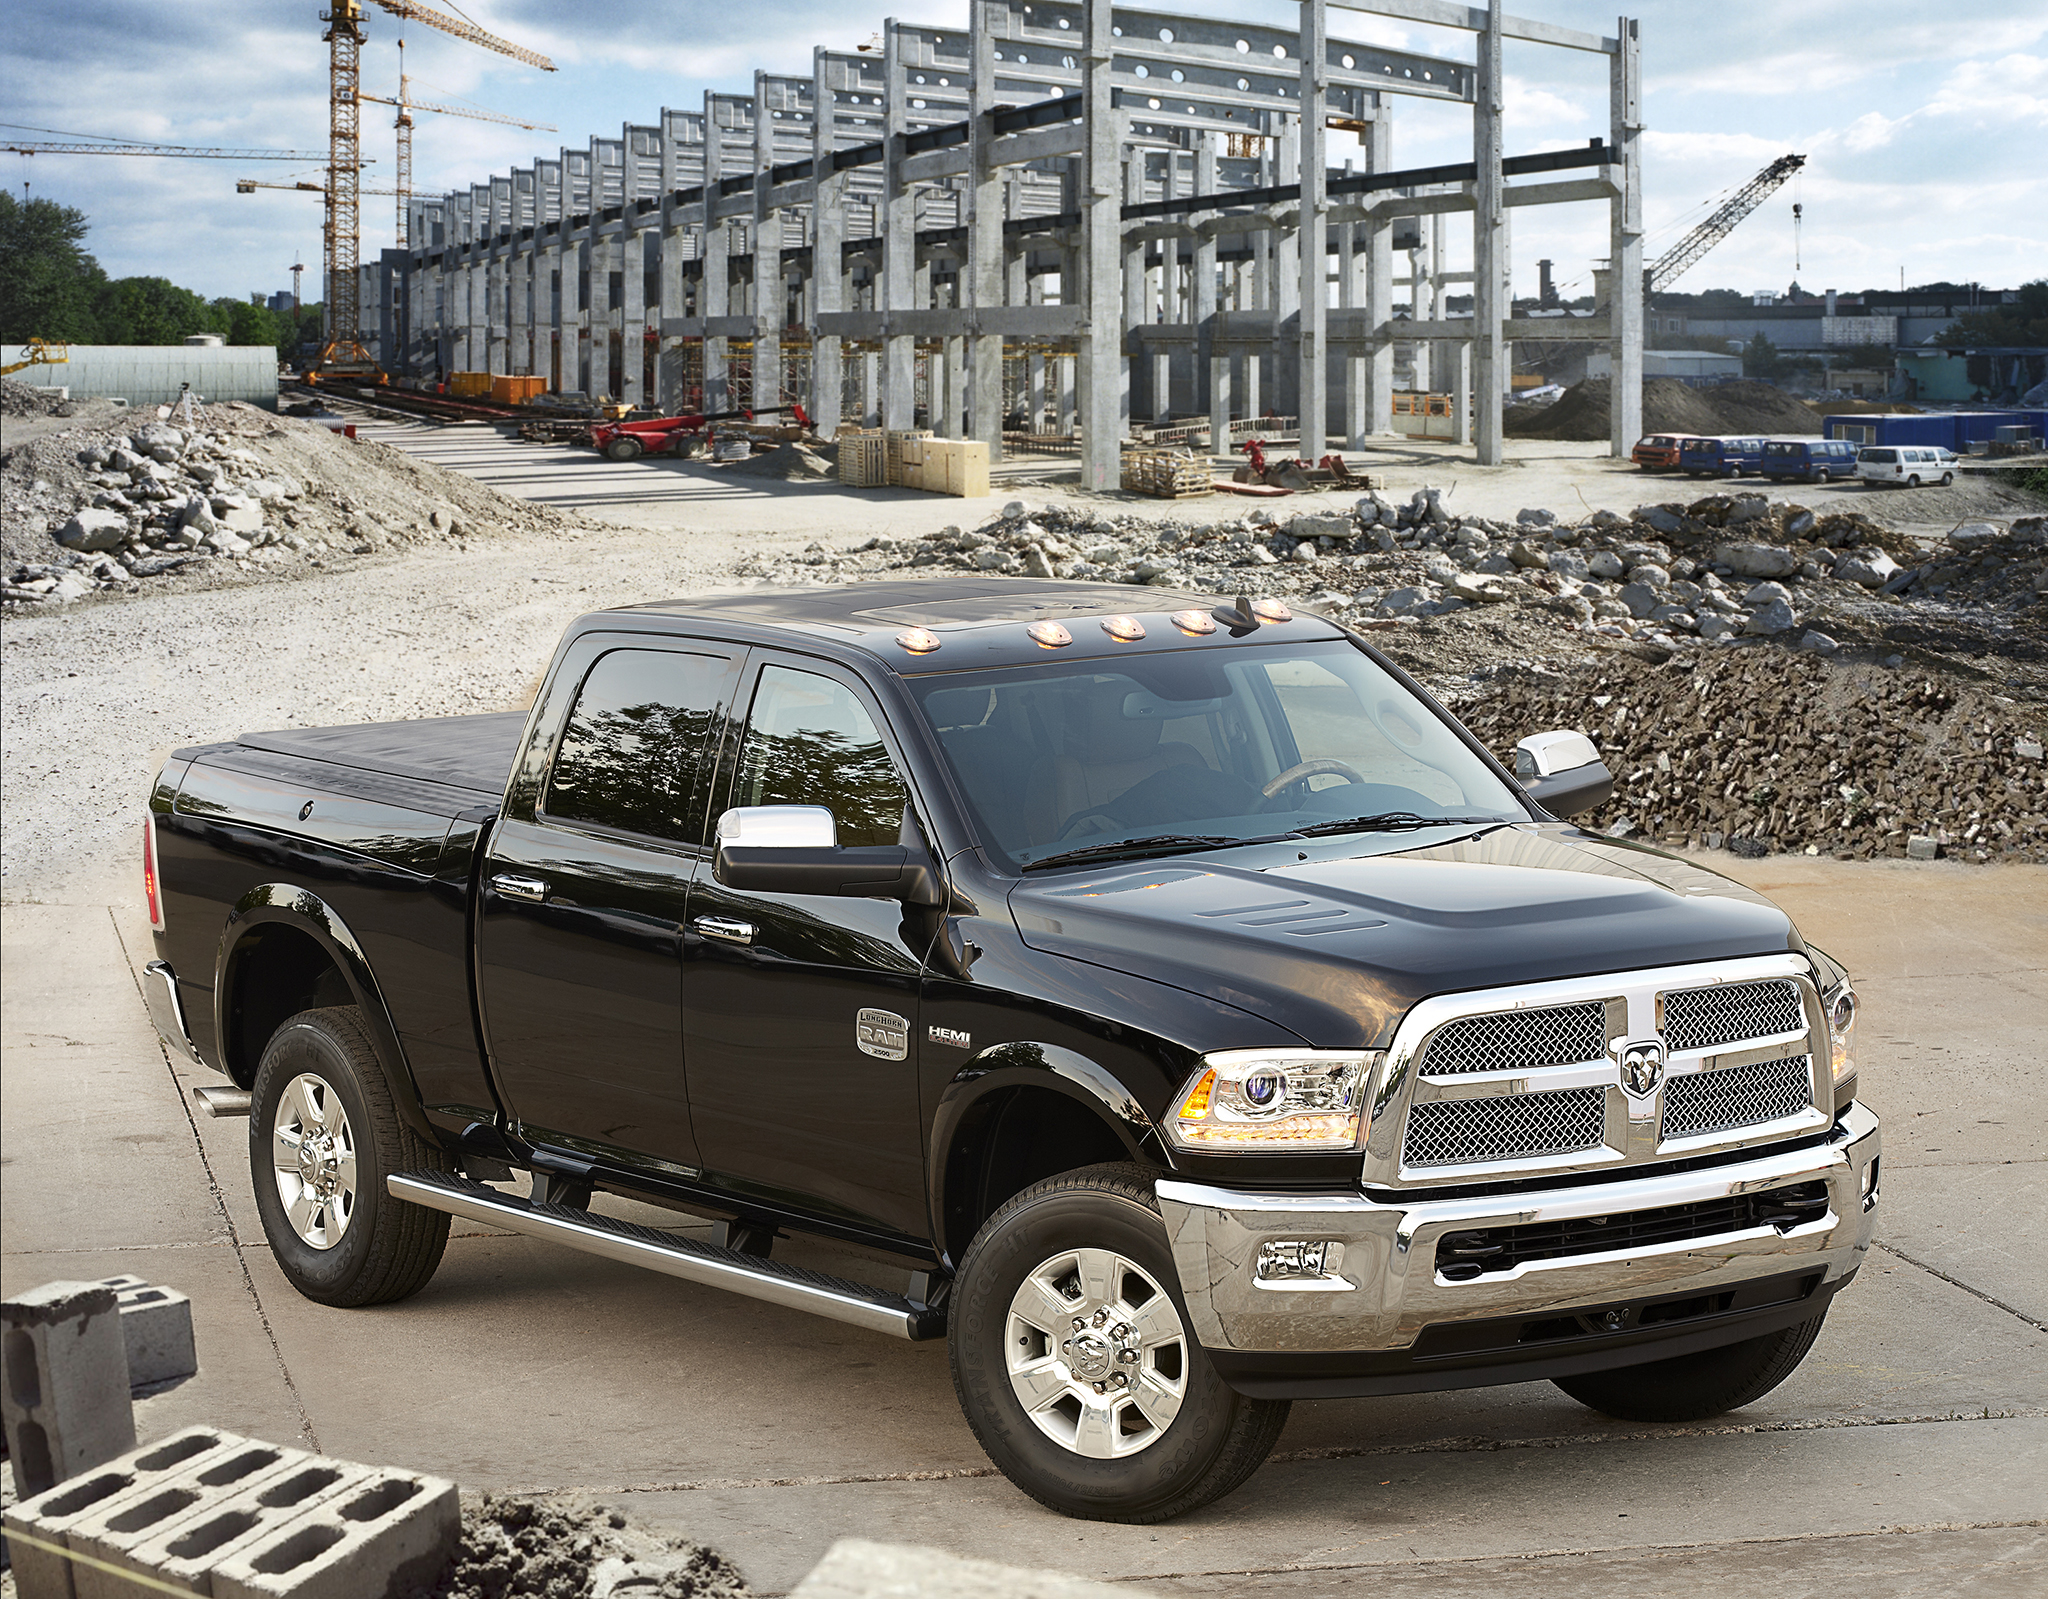 Least Reliable: Ram 2500